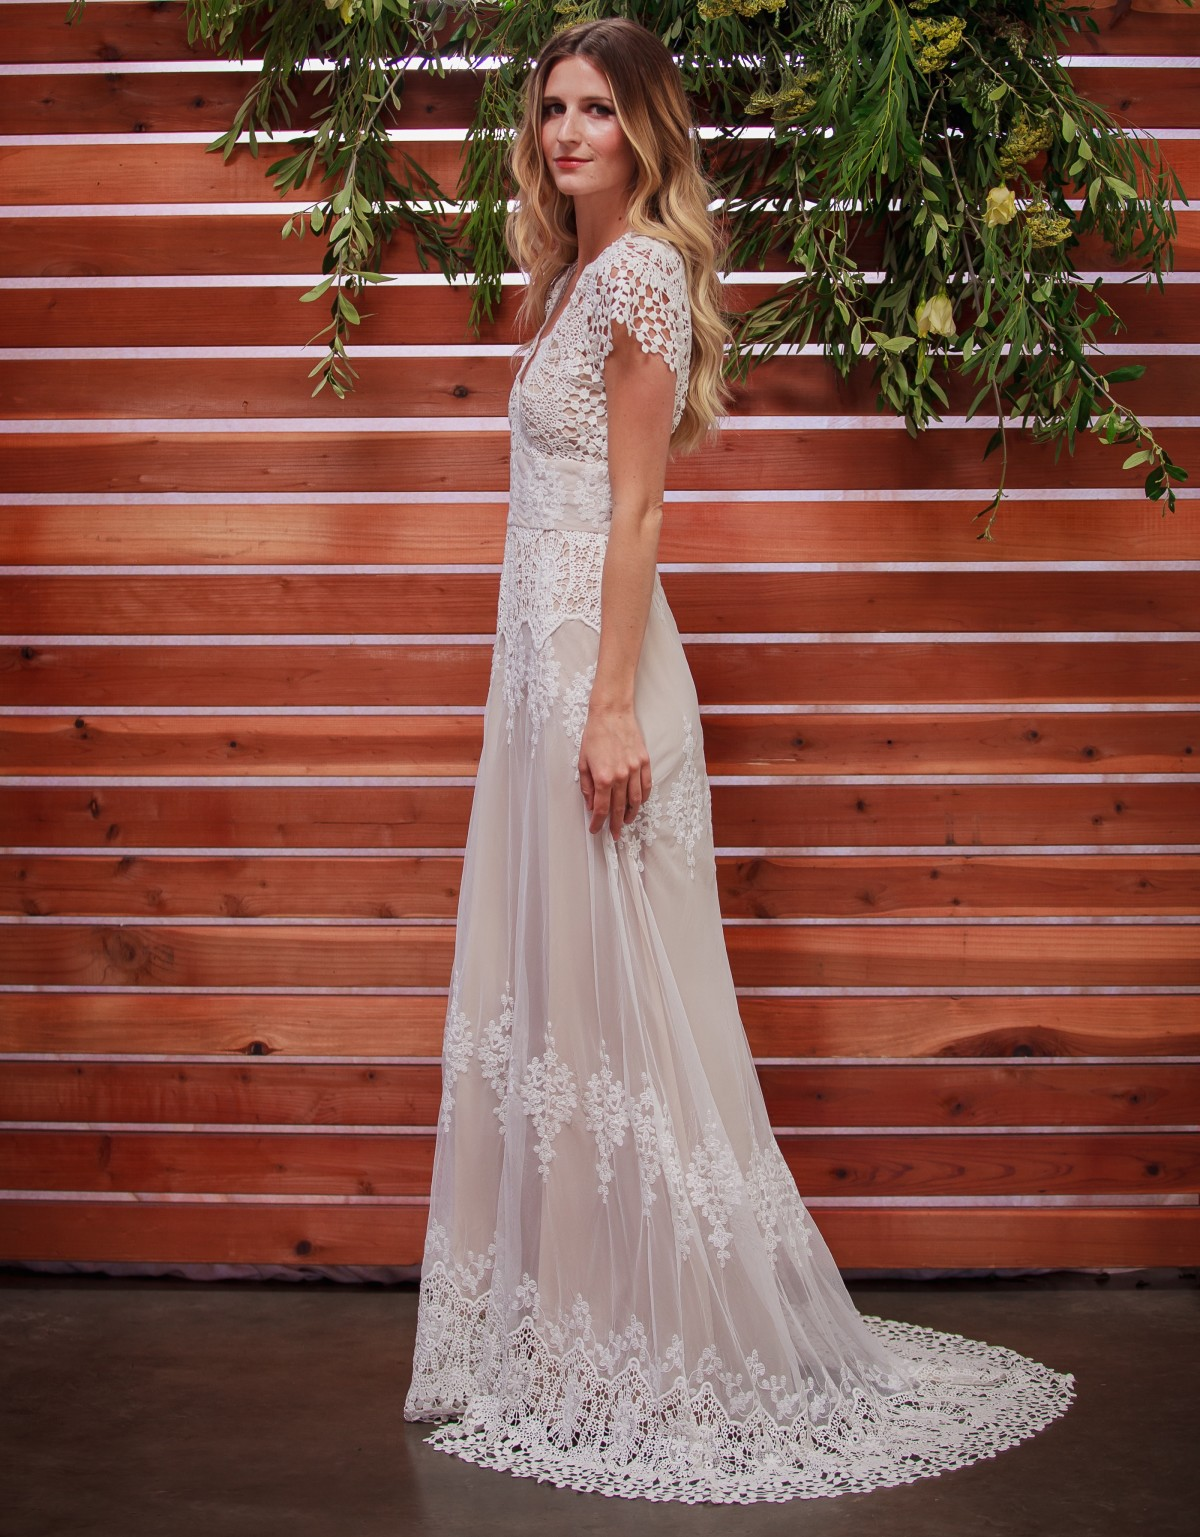 Azalea Boho Cotton Lace Wedding Dress | Dreamers and Lovers